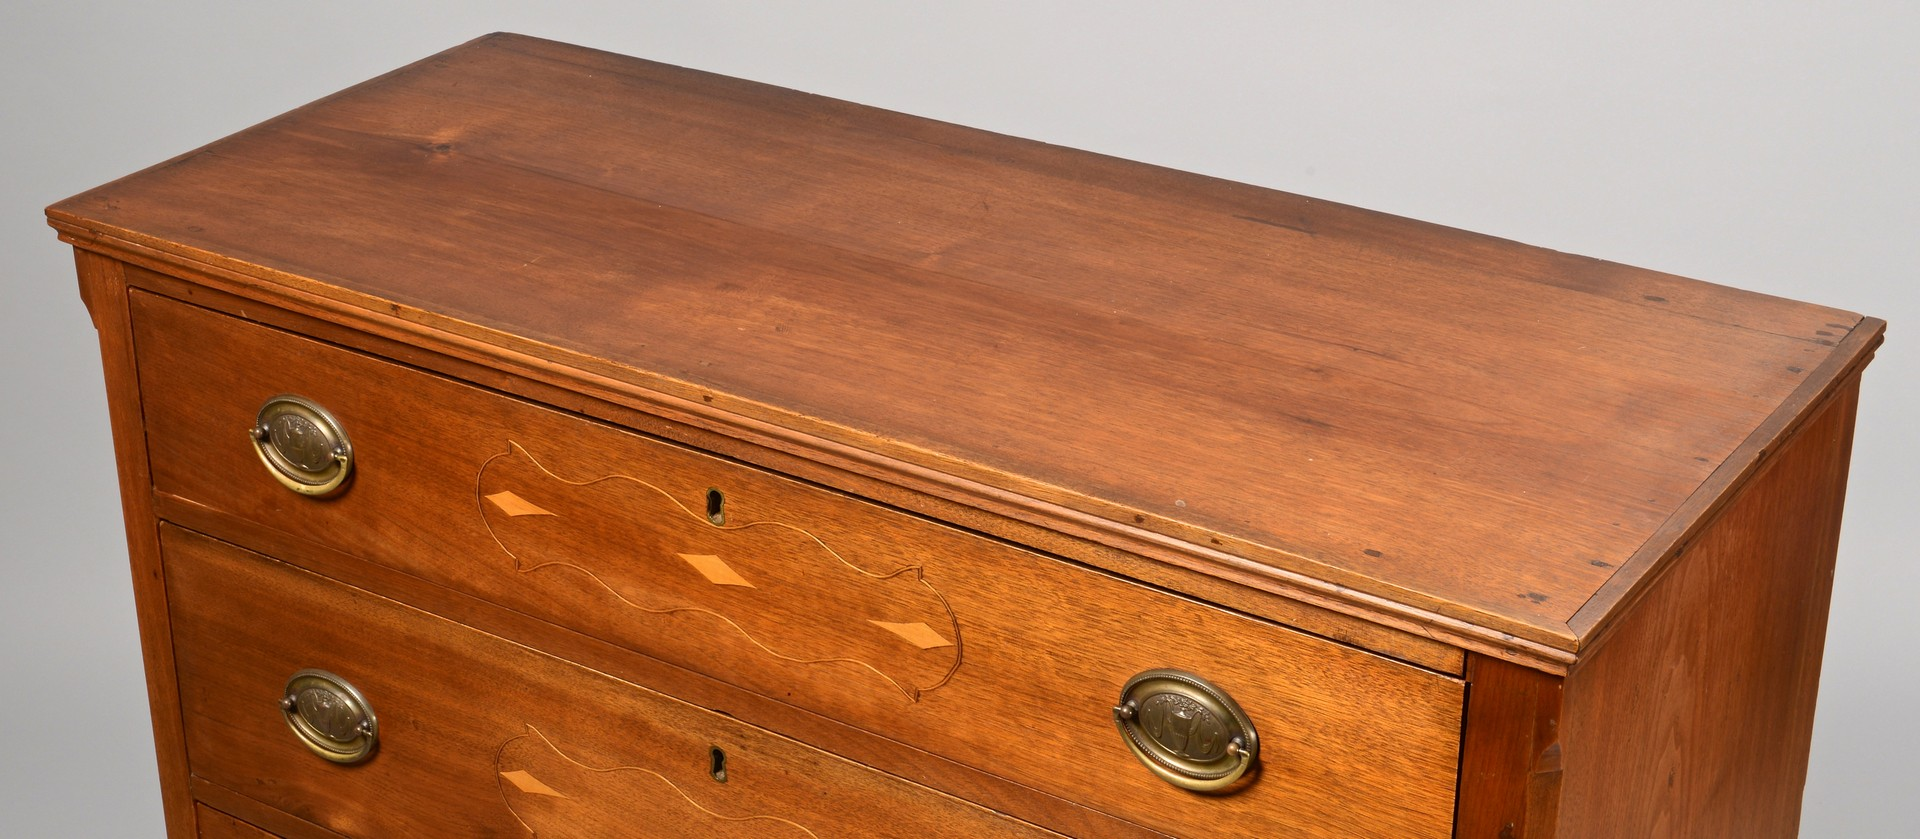 Lot 118: Greene County, TN Inlaid Chest of Drawers